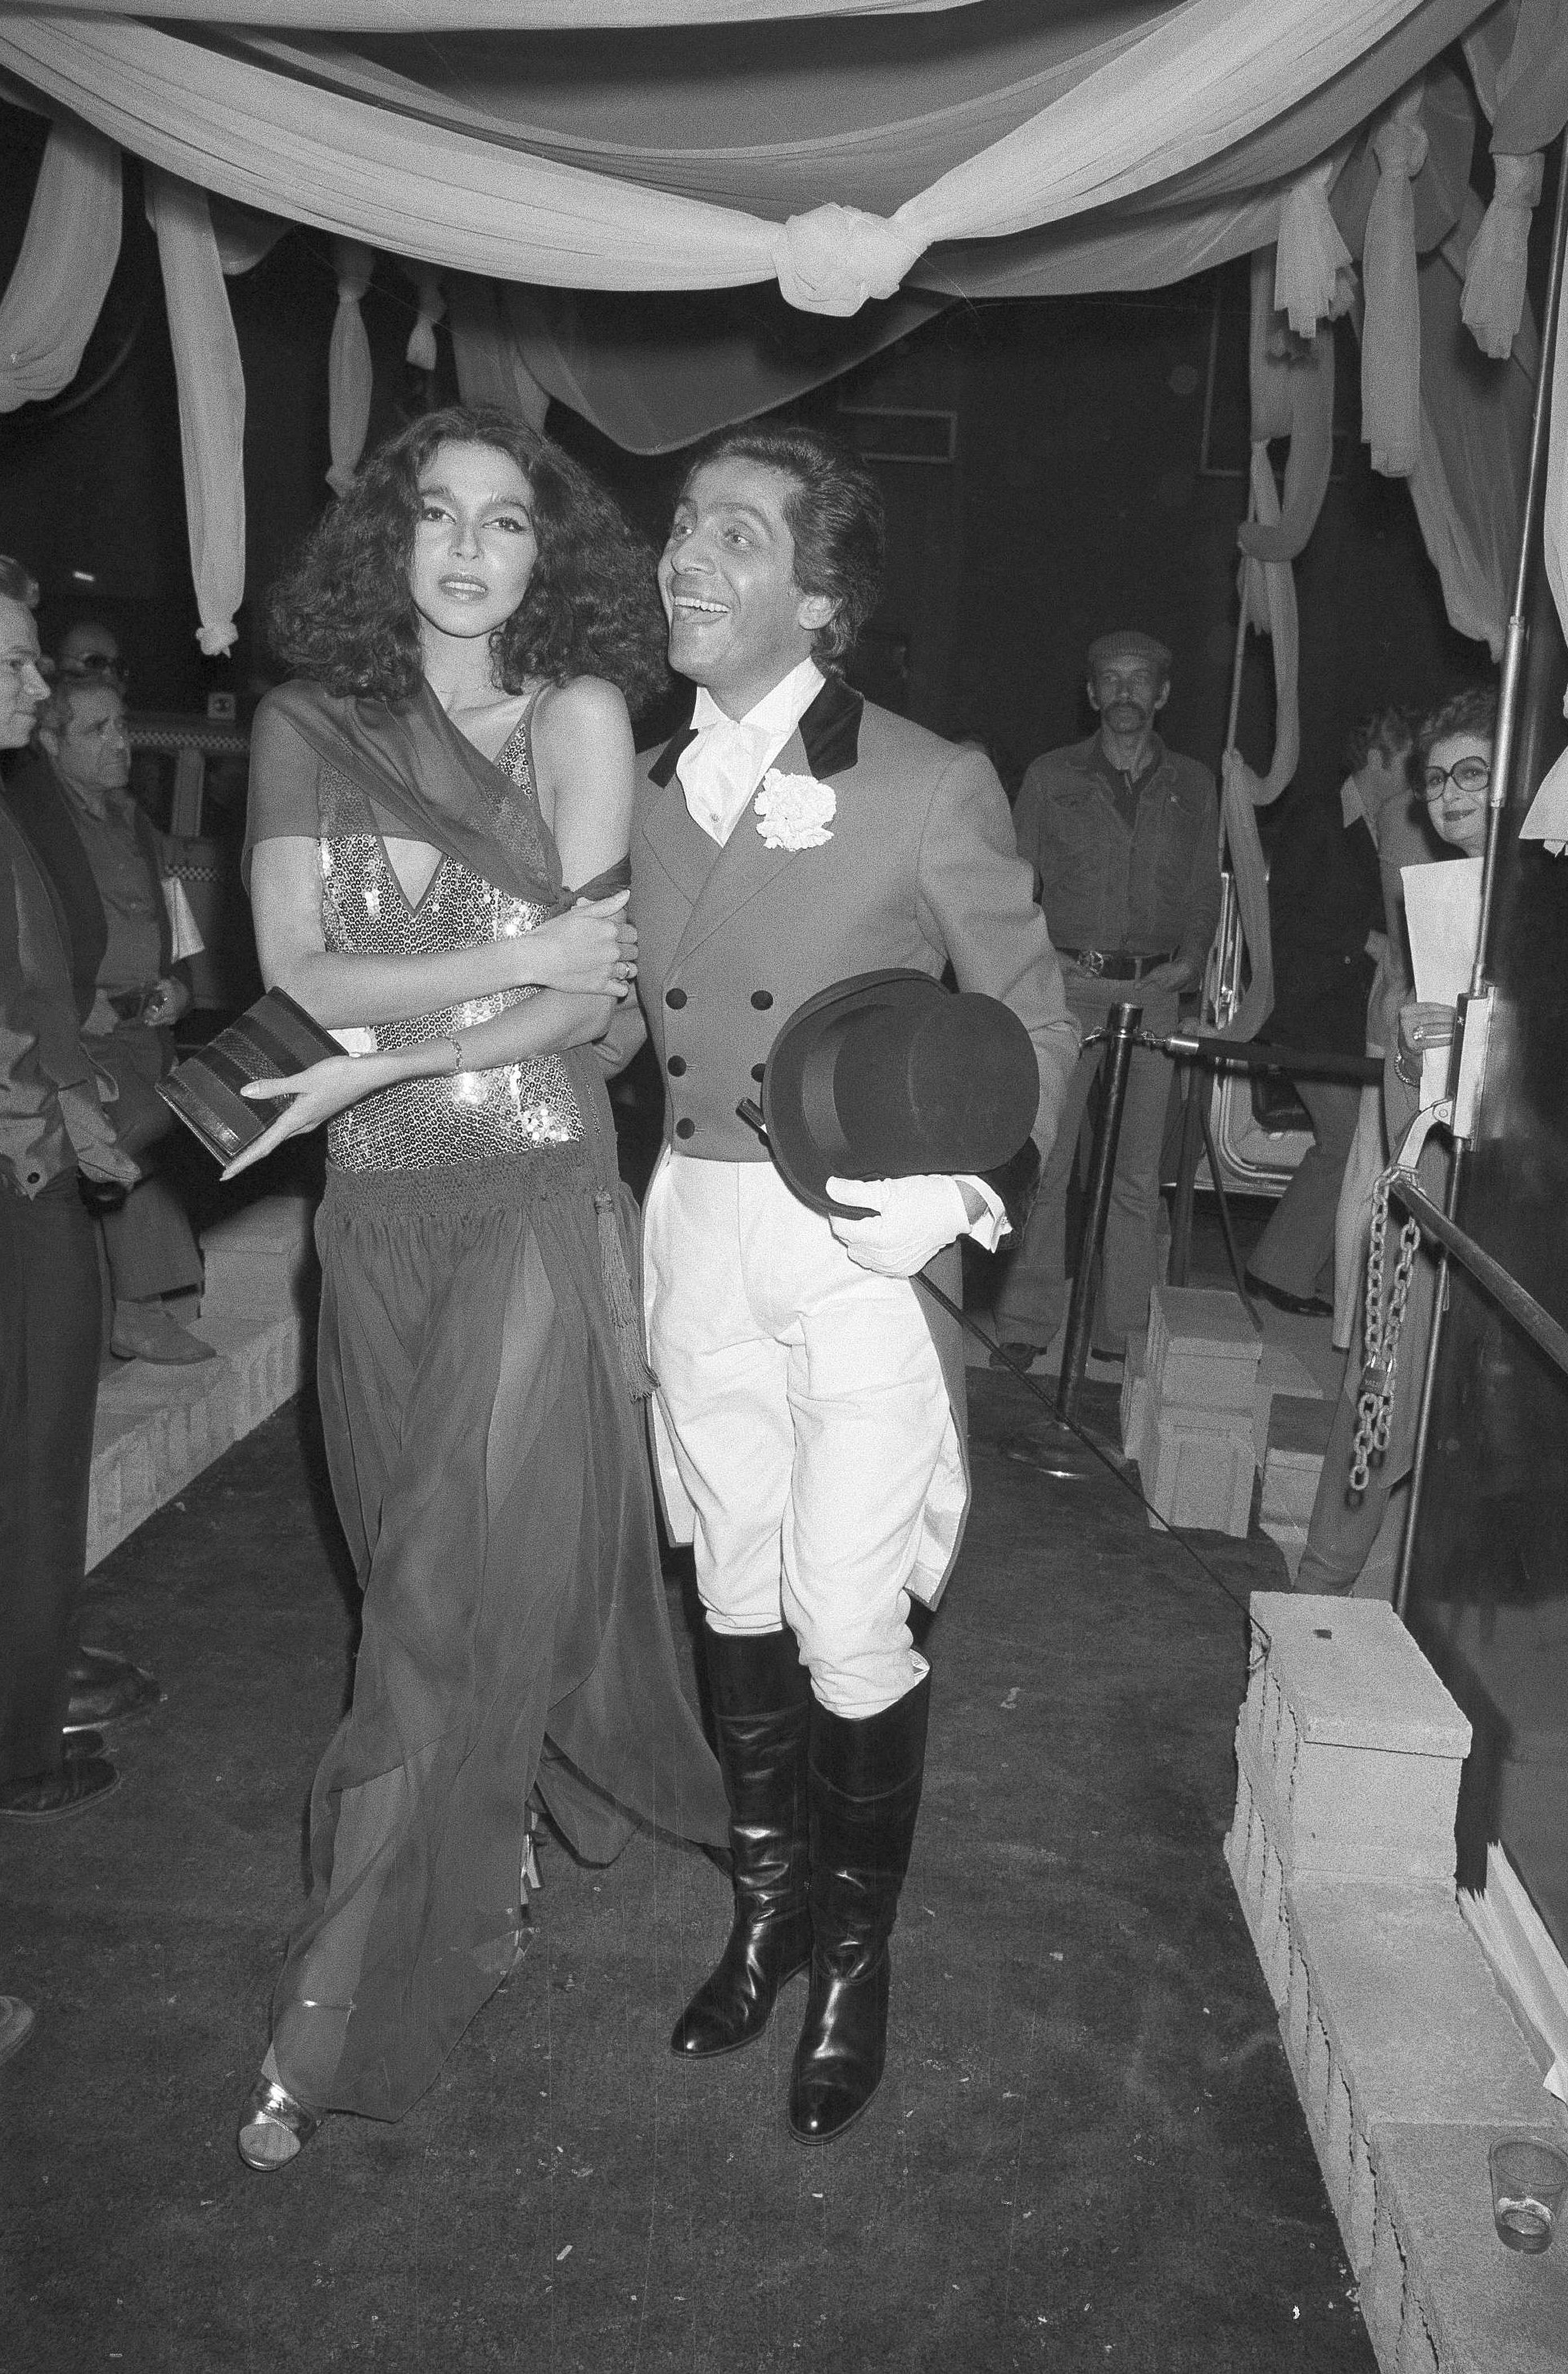 Studio 54 In The 1970s: Wonderful Photos Of Famous Faces ...